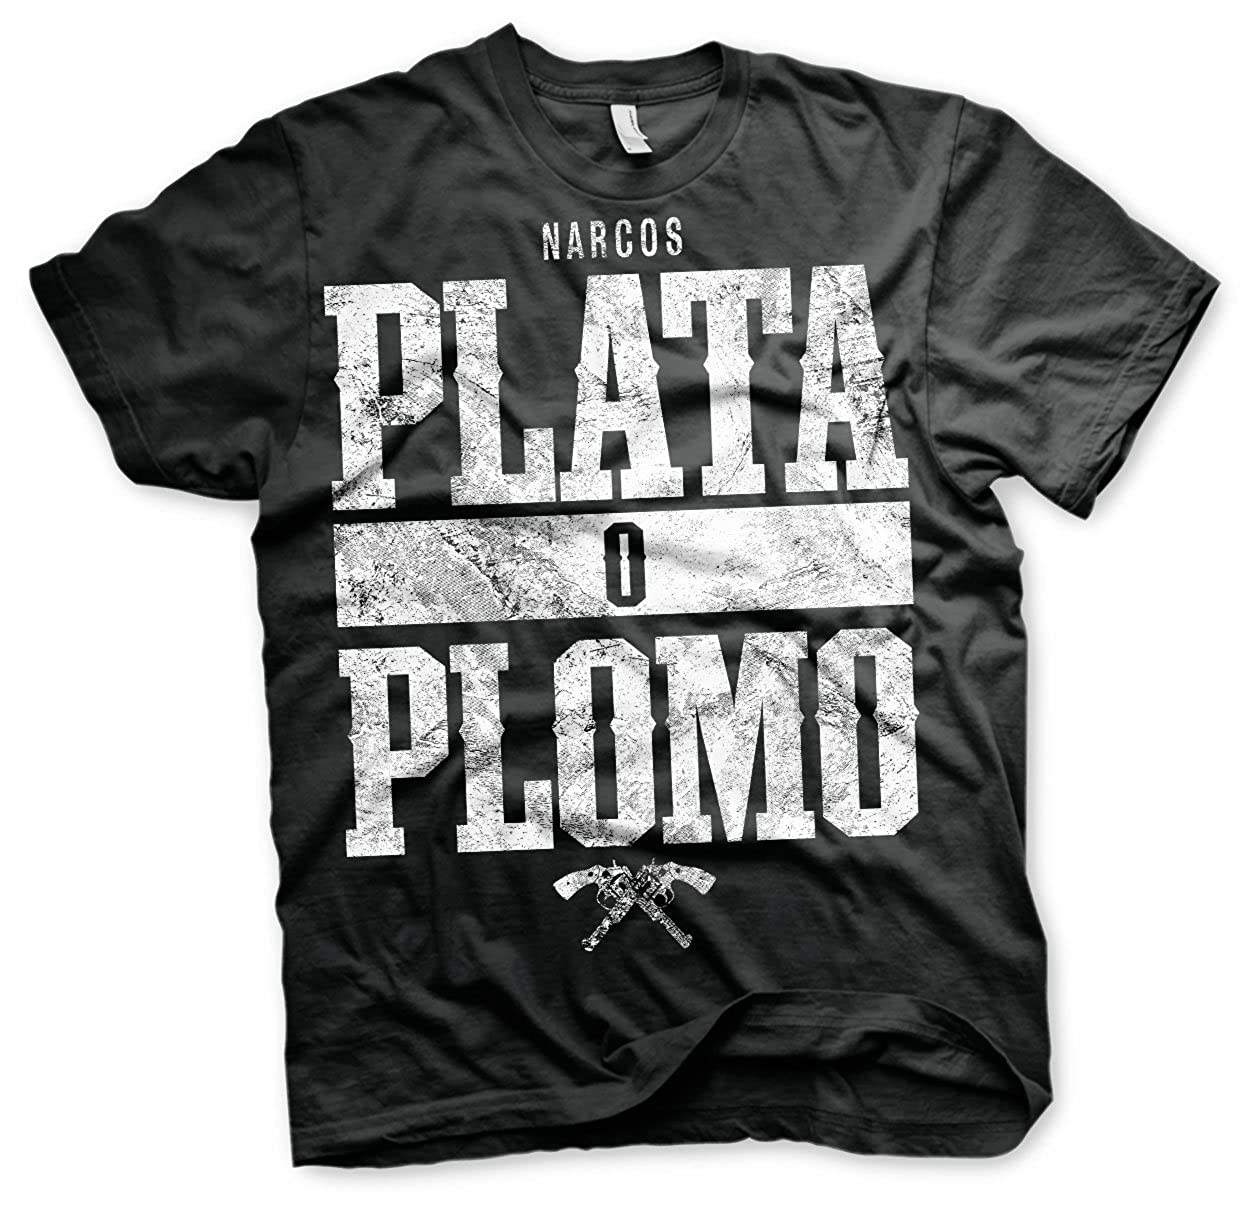 Officially Licensed Merchandise Narcos - Plata o Plomo T-Shirt (Black)